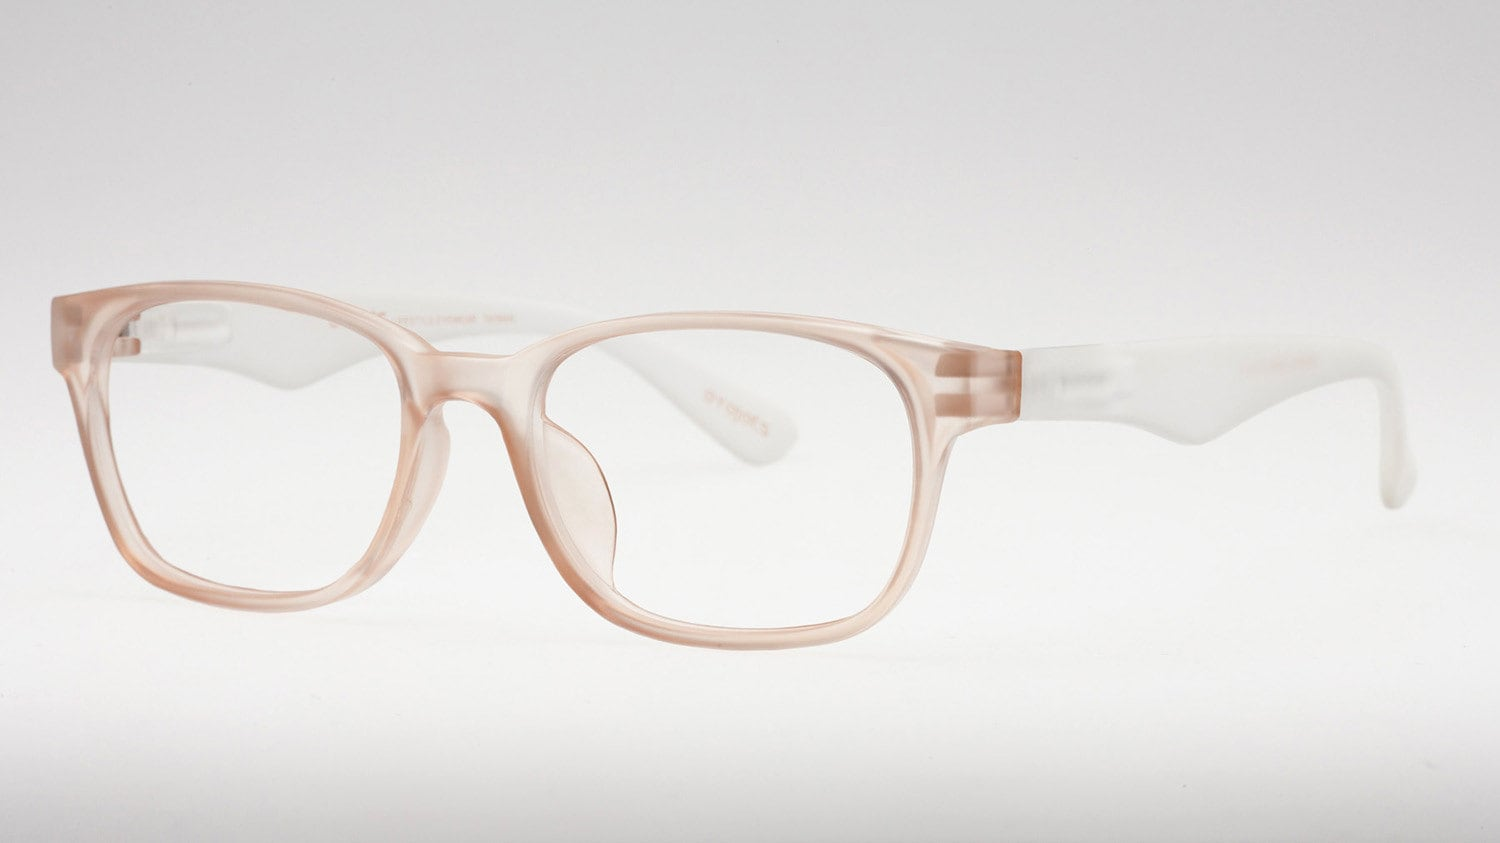 4f10e32458 Nude Reading Glasses Clear Frame Glasses Wayfarer Glasses